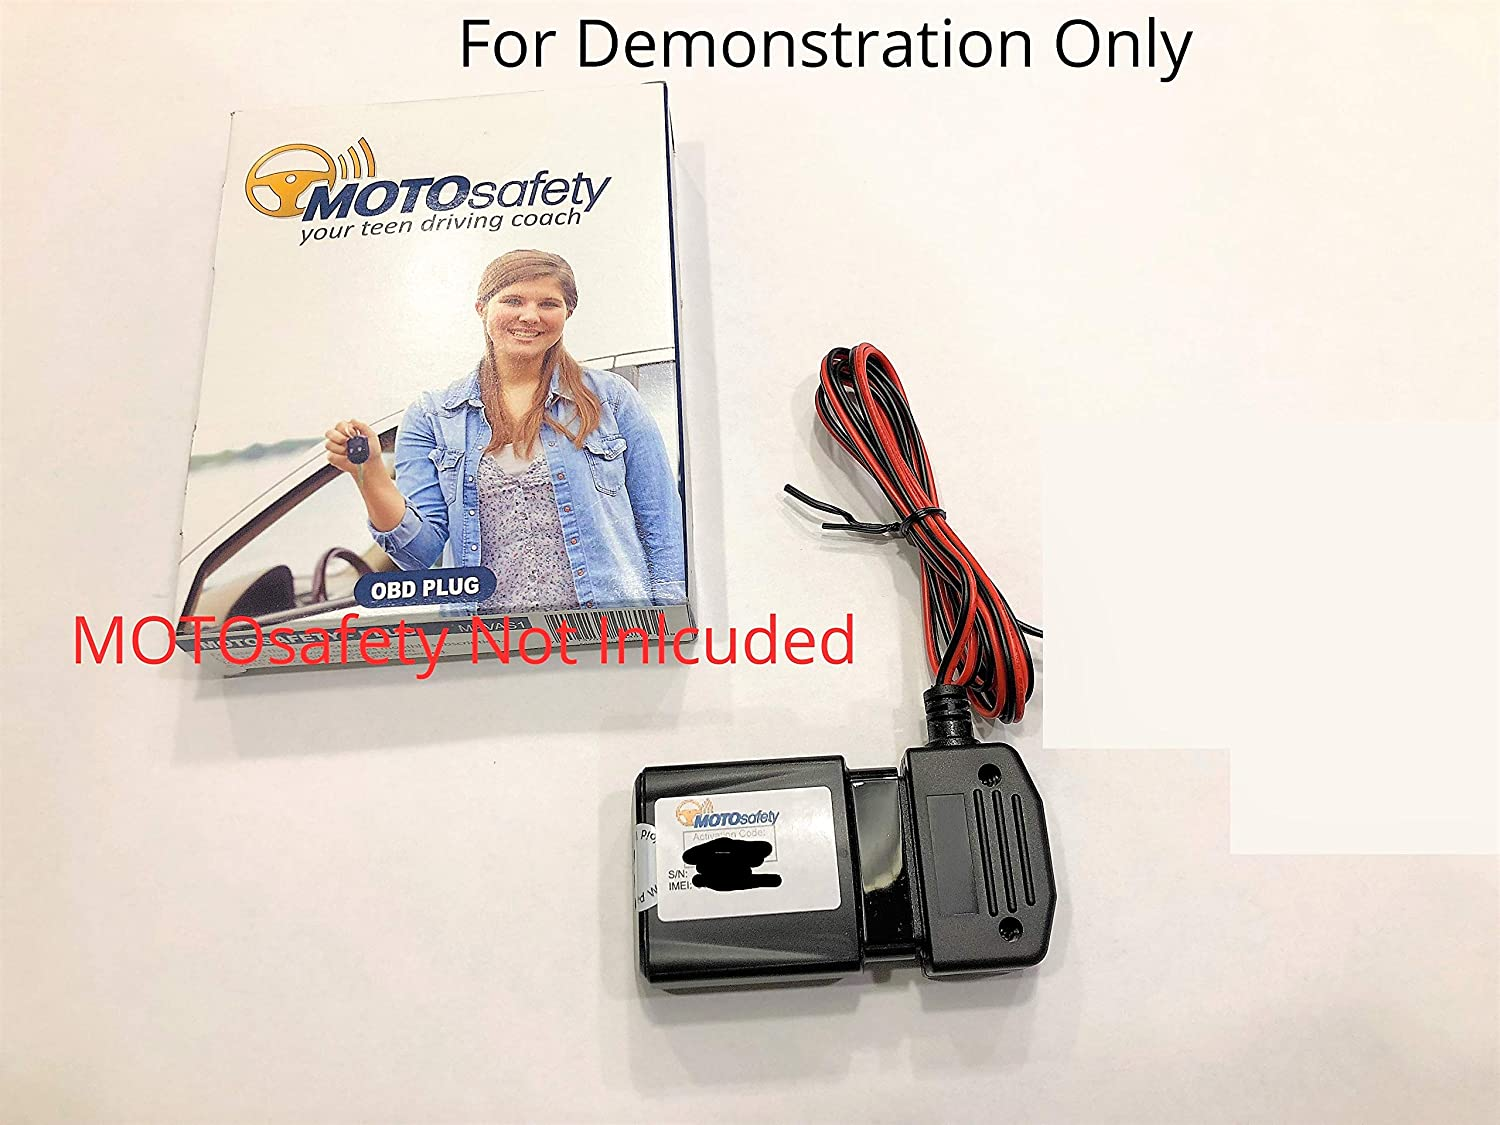 OBD ll GPS Tracker Hide//Relocate Wired Conversion kit Power Adapter JVega electronics